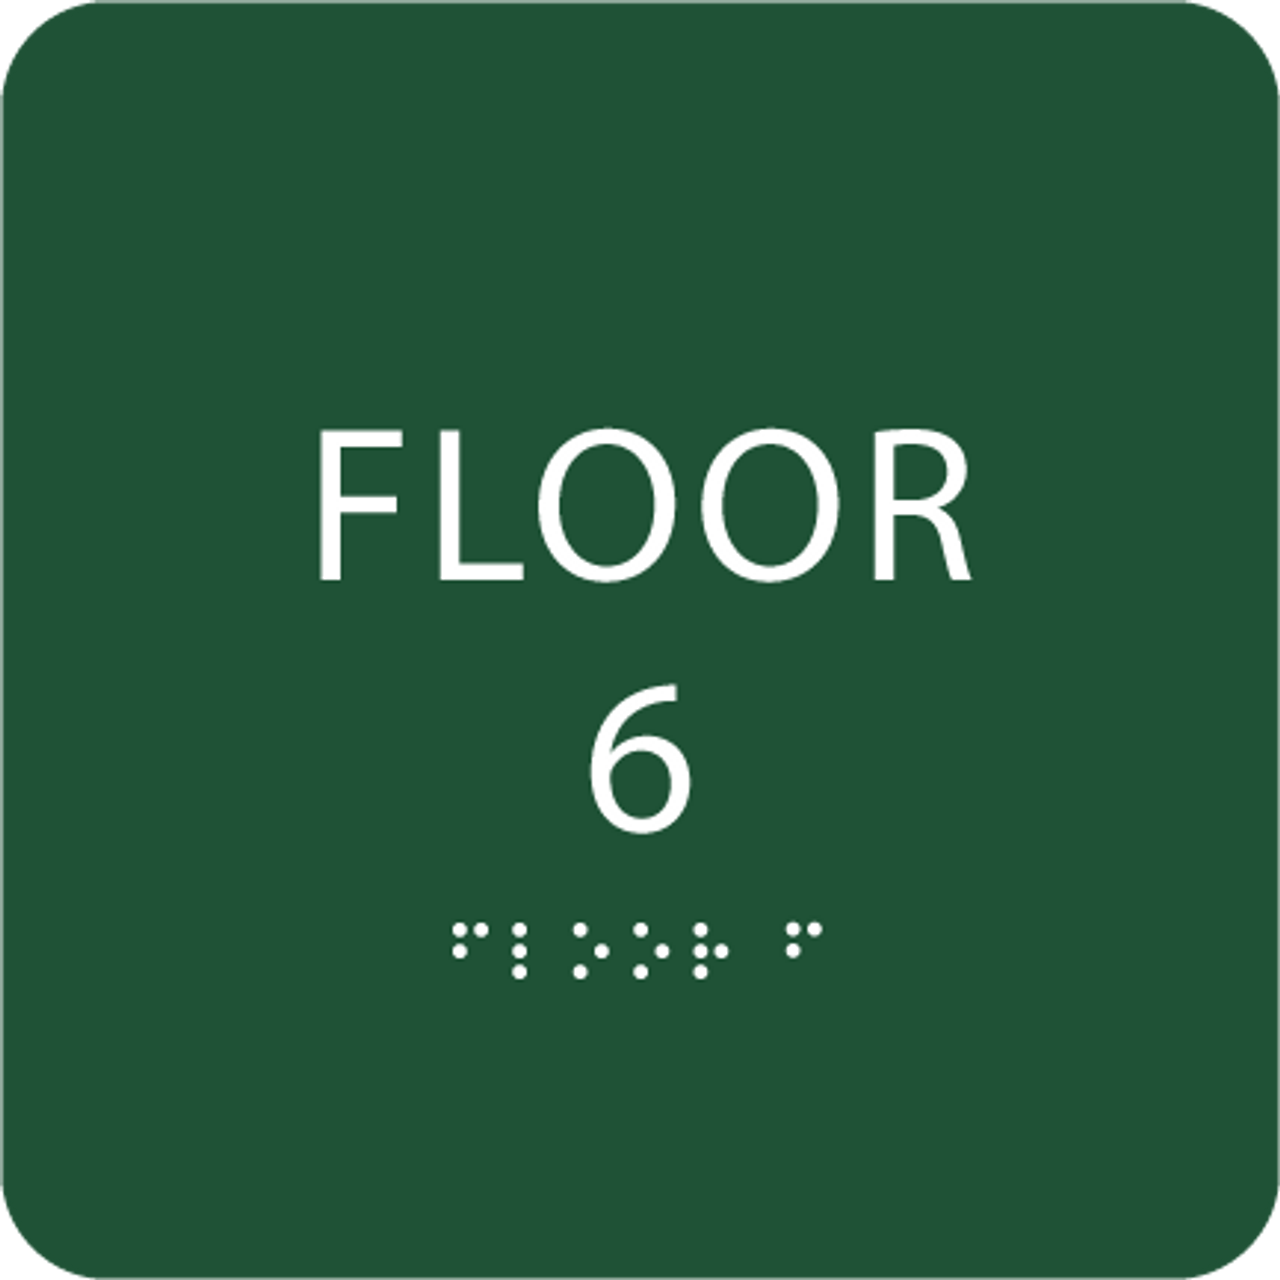 Green Floor 6 Level Number ADA Sign